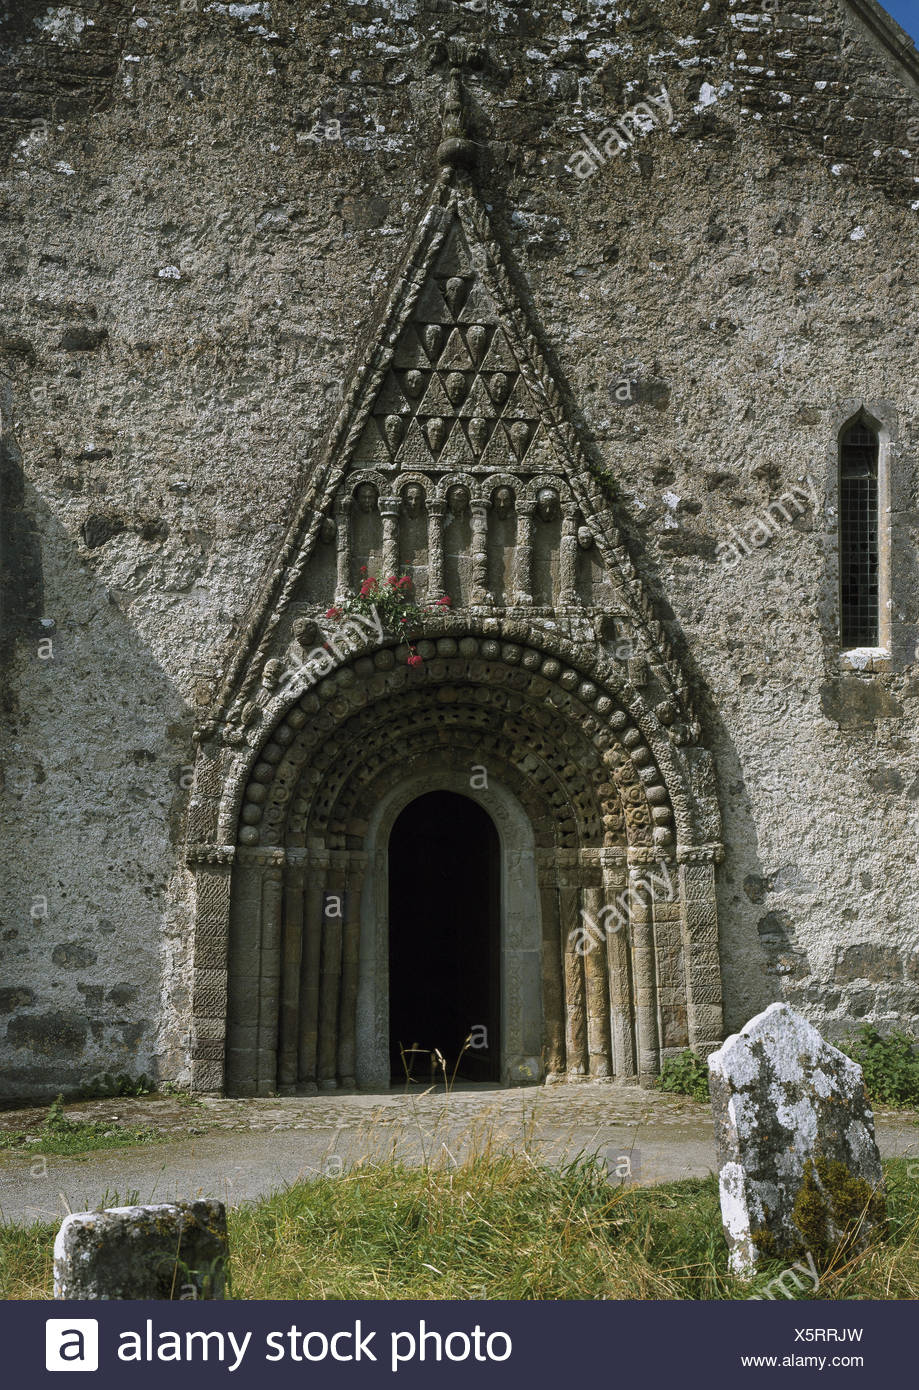 Ireland, Clonfert, church door, Europe, St. Brendan's Cathedral - builds in 563 and 1016, in 1164 and 1179 burnt down - was in the 16th century the centre of a blossoming school with up to 3000 students and is probably valid rightly as the nicest Romanesque church Ireland., - Stock Image